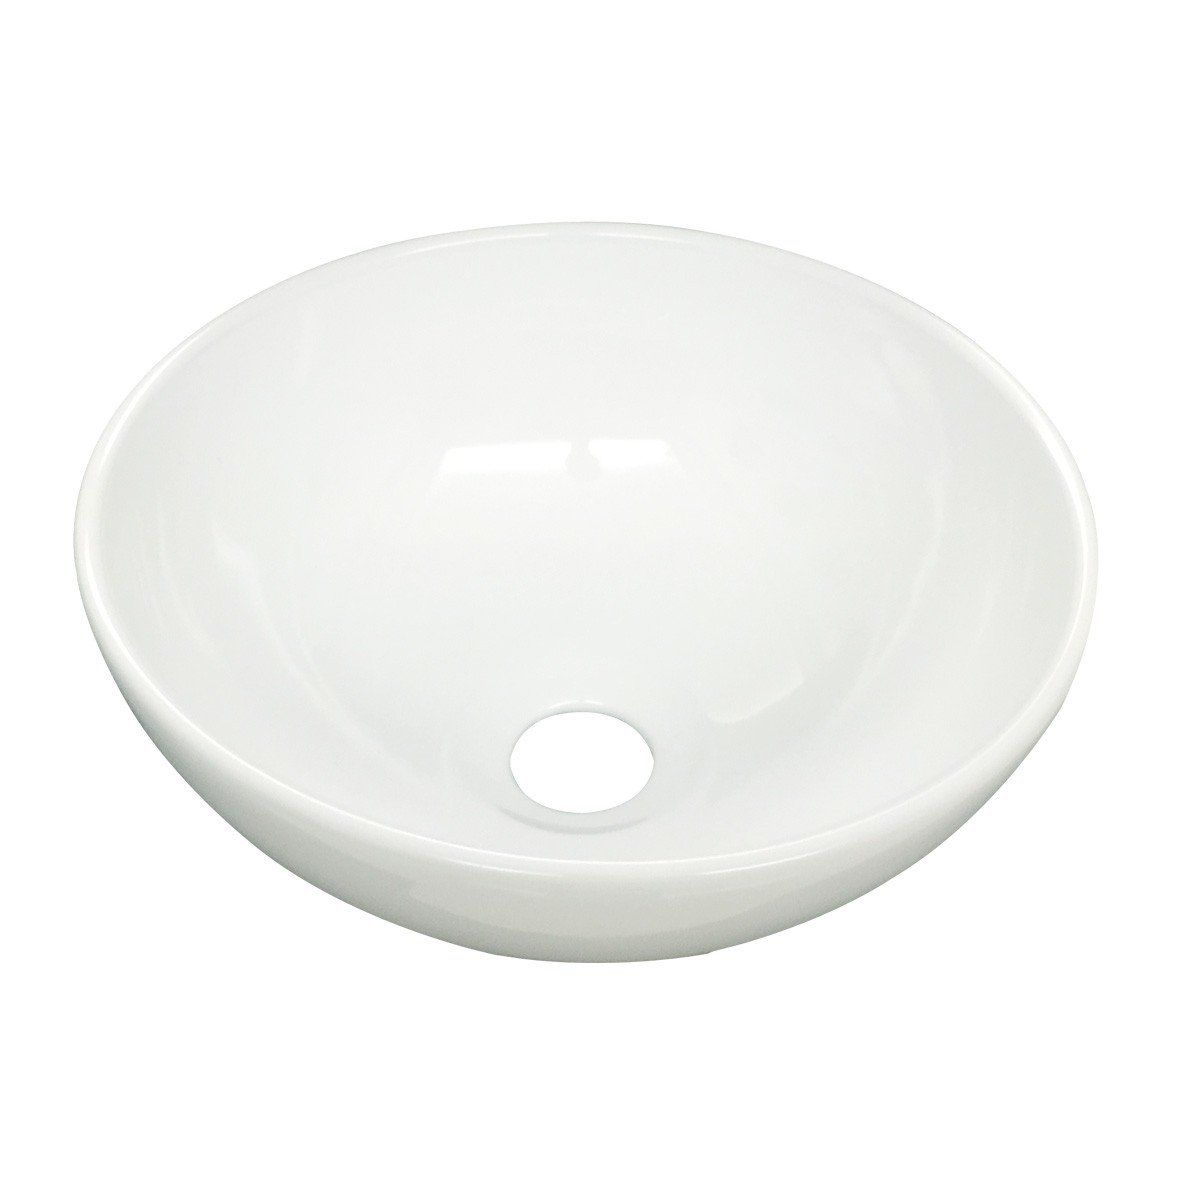 Small Mini Above Counter Round Bathroom White Vessel Sink 11 25 Inches D You Can Find More Details By Visiti Small Vessel Sinks White Vessel Sink Vessel Sink